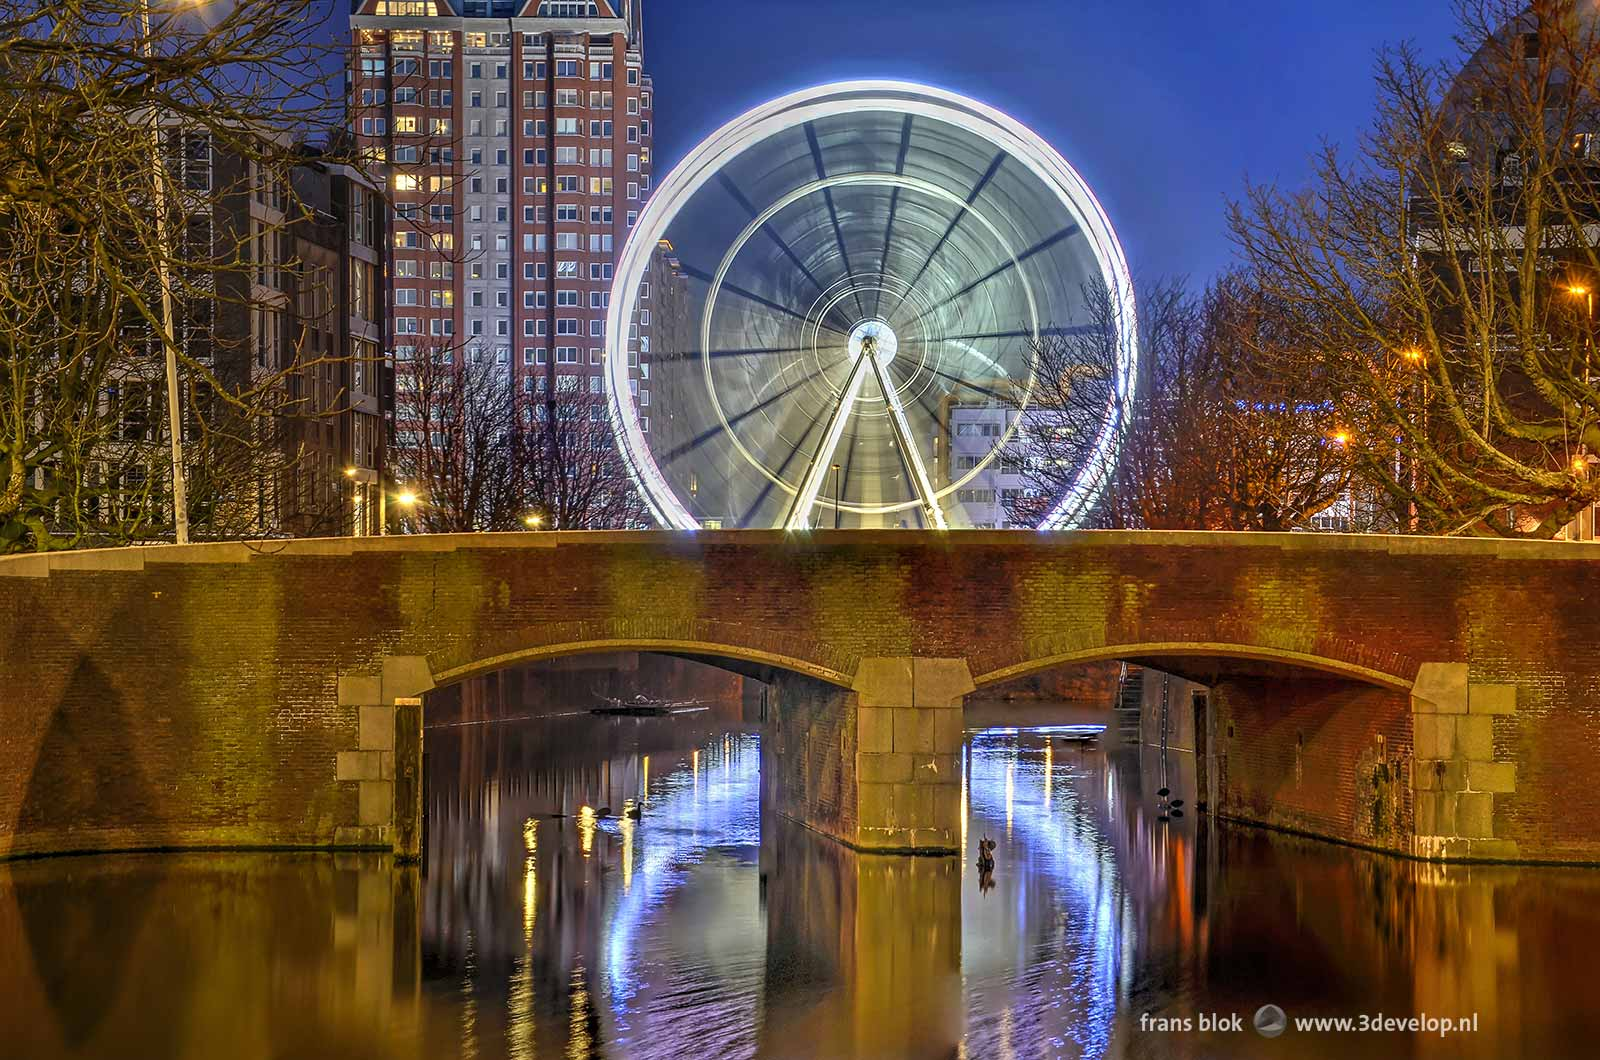 Ferriw Wheel The View, reflecting in Steigergracht, with the Keizerstraat bridge in the foreground